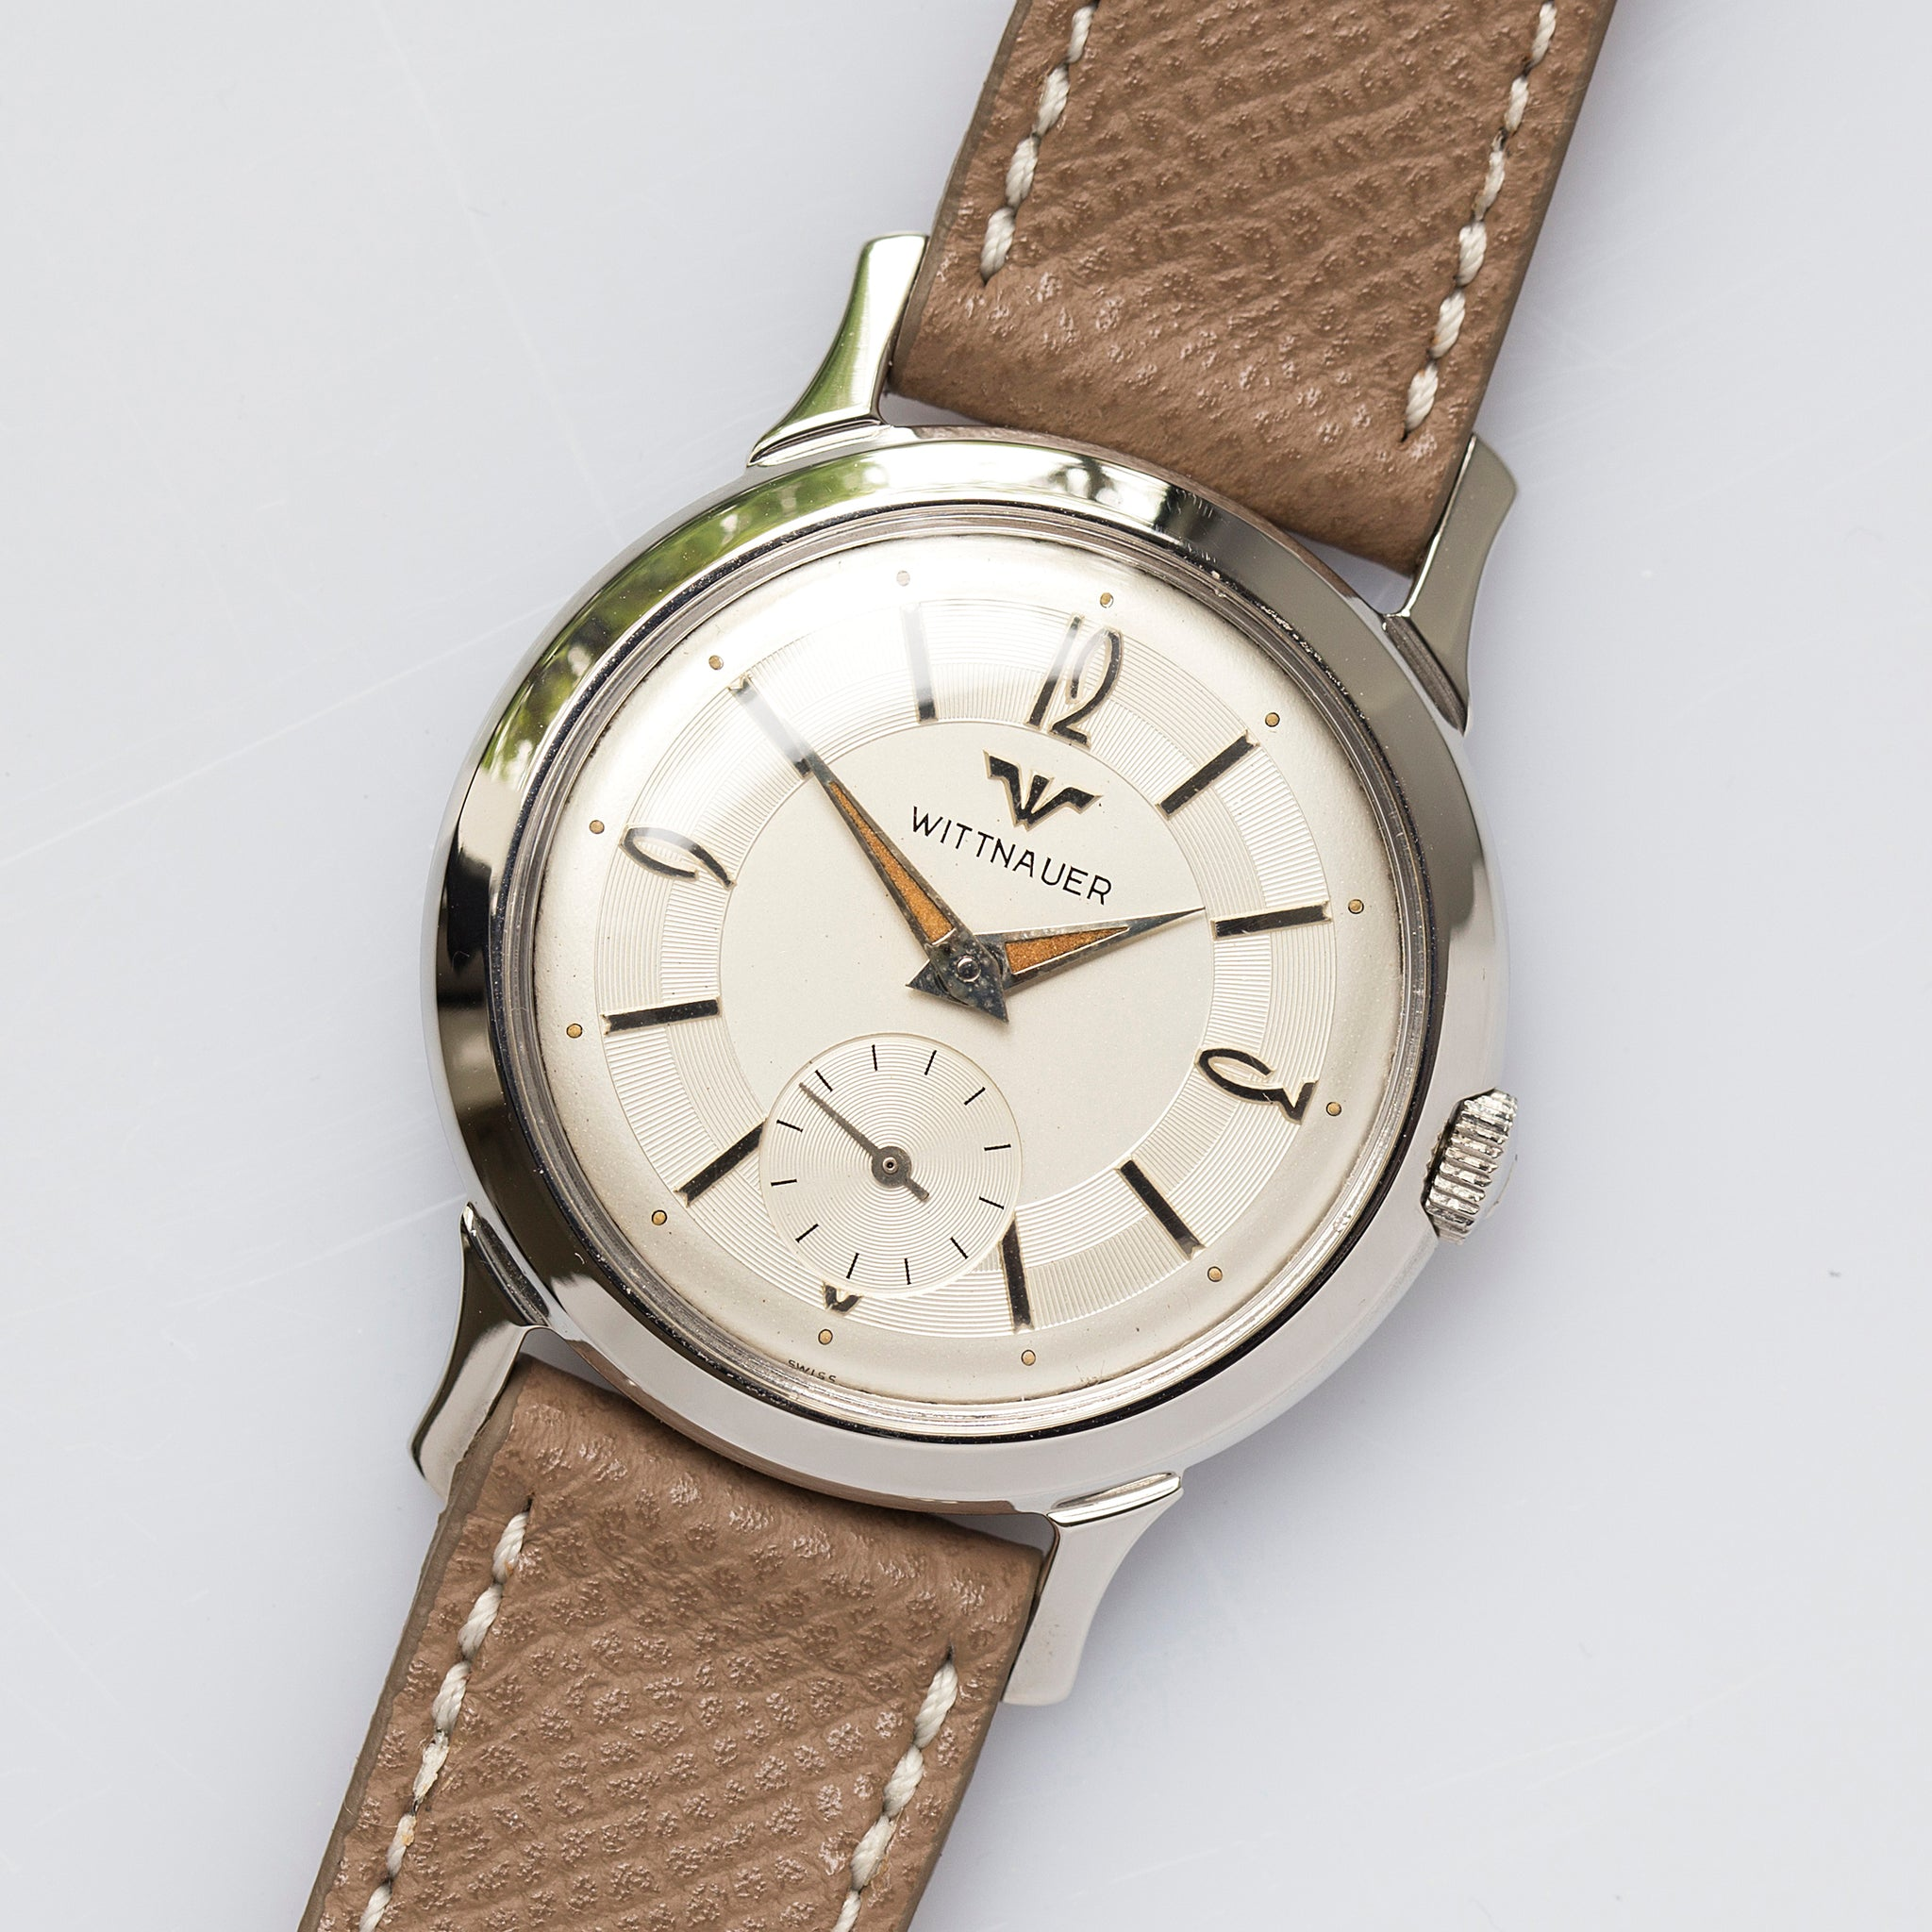 Wittnauer Watch Value >> 1959 Wittnauer Guilloche Radium Dial